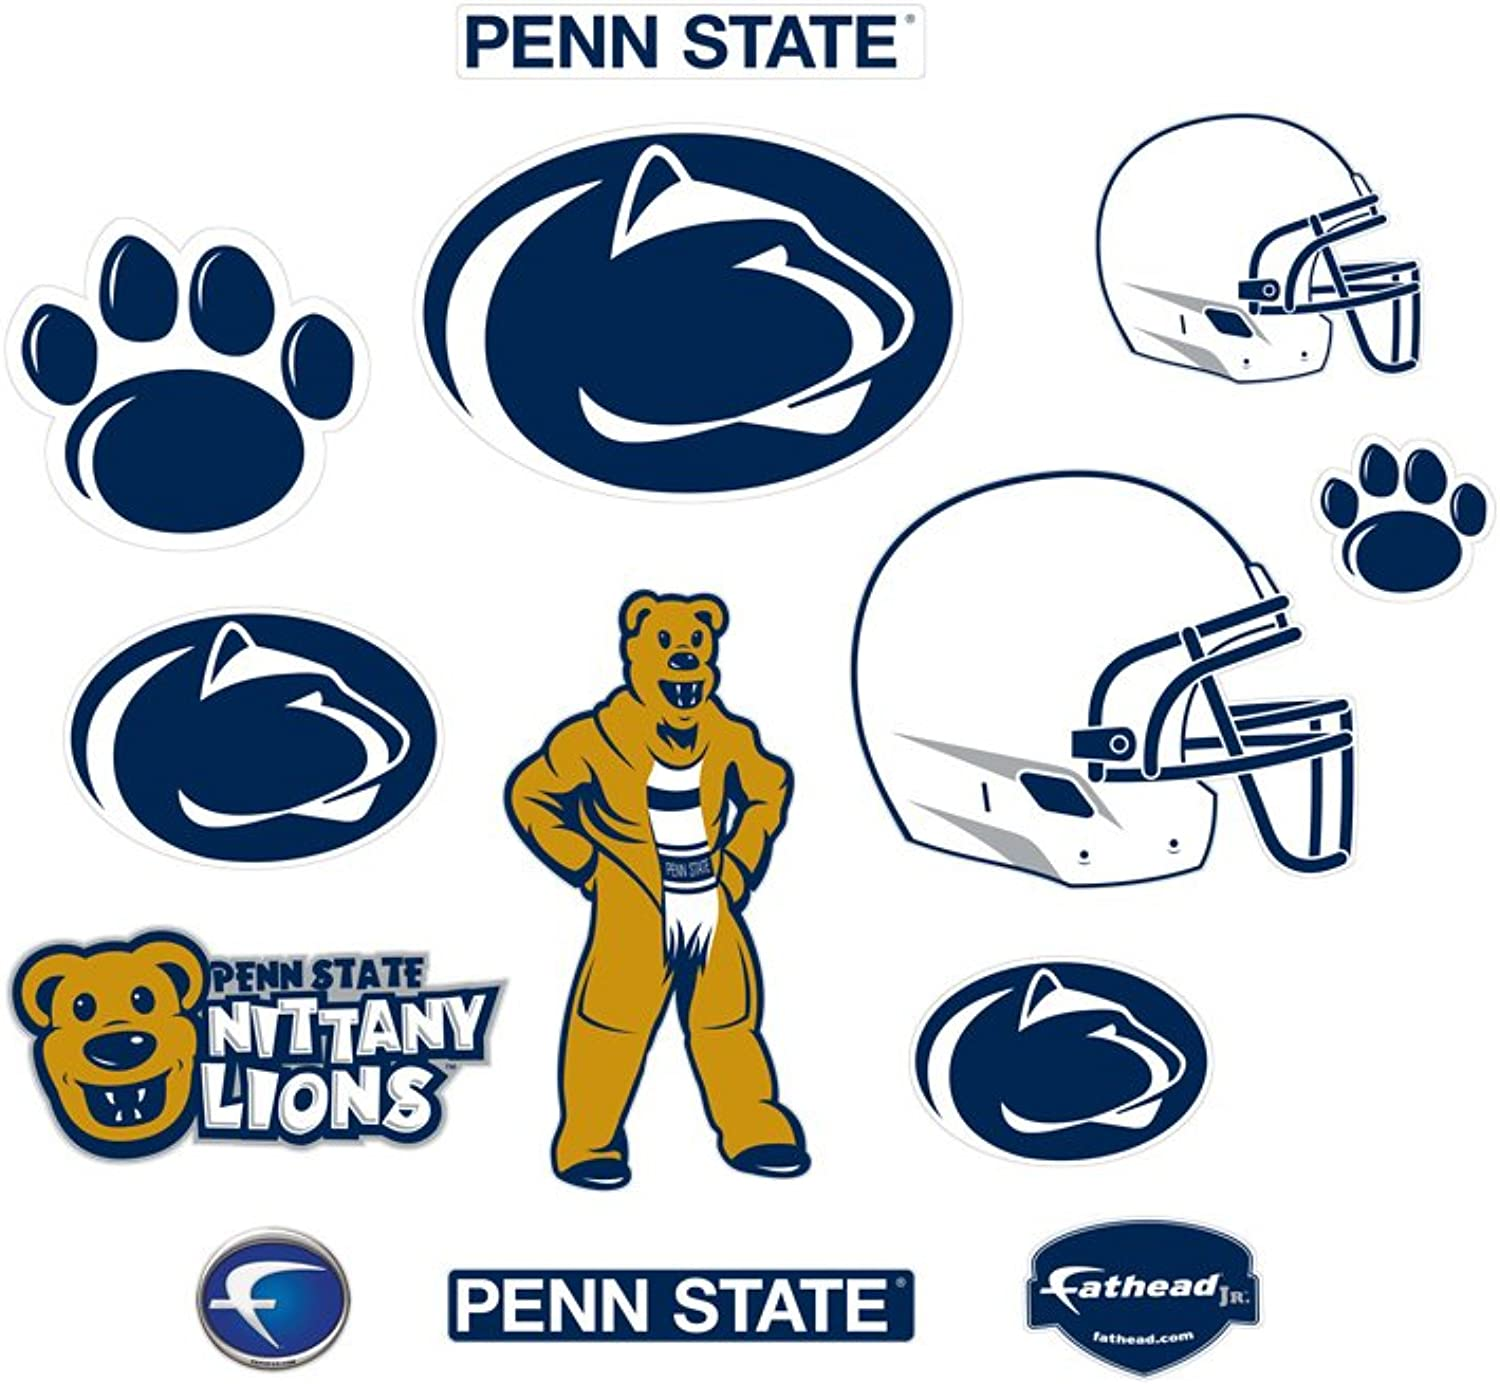 Penn State Nittany Lions Team Logo Assortment Fathead Jr. Wall Decal